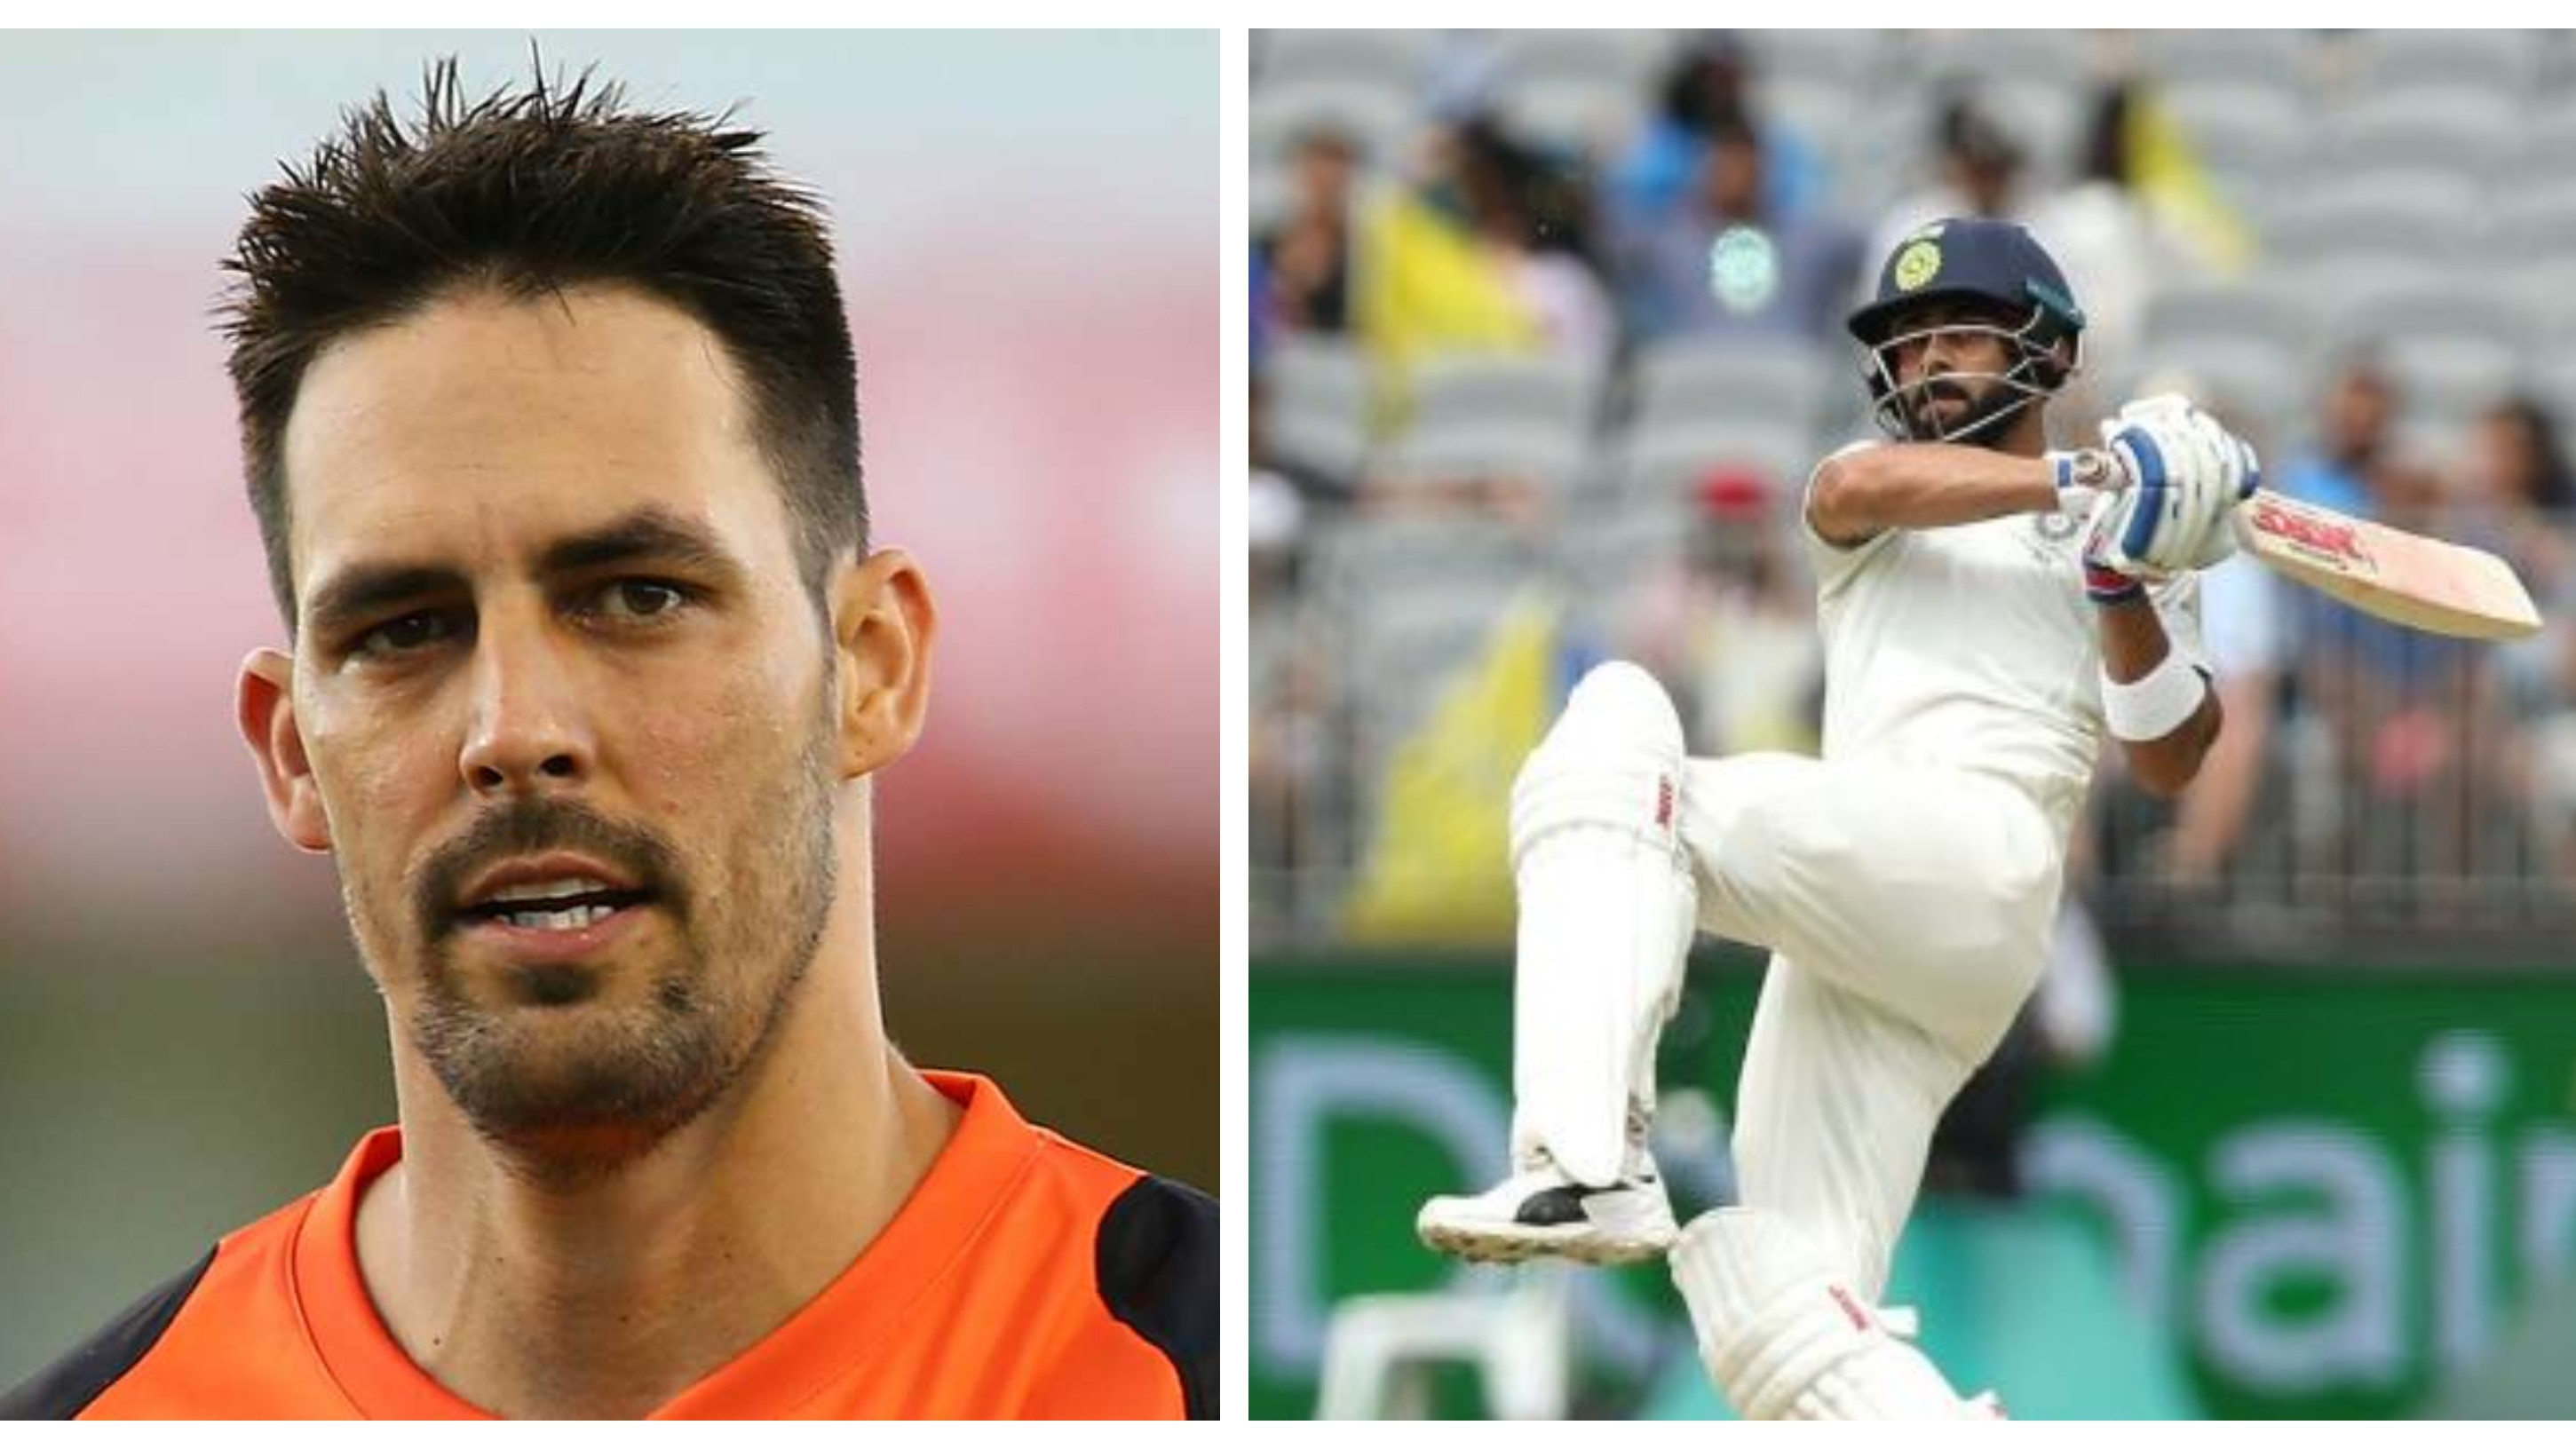 AUS v IND 2018-19: Johnson takes dig at Kohli for not accepting the word of Handscomb